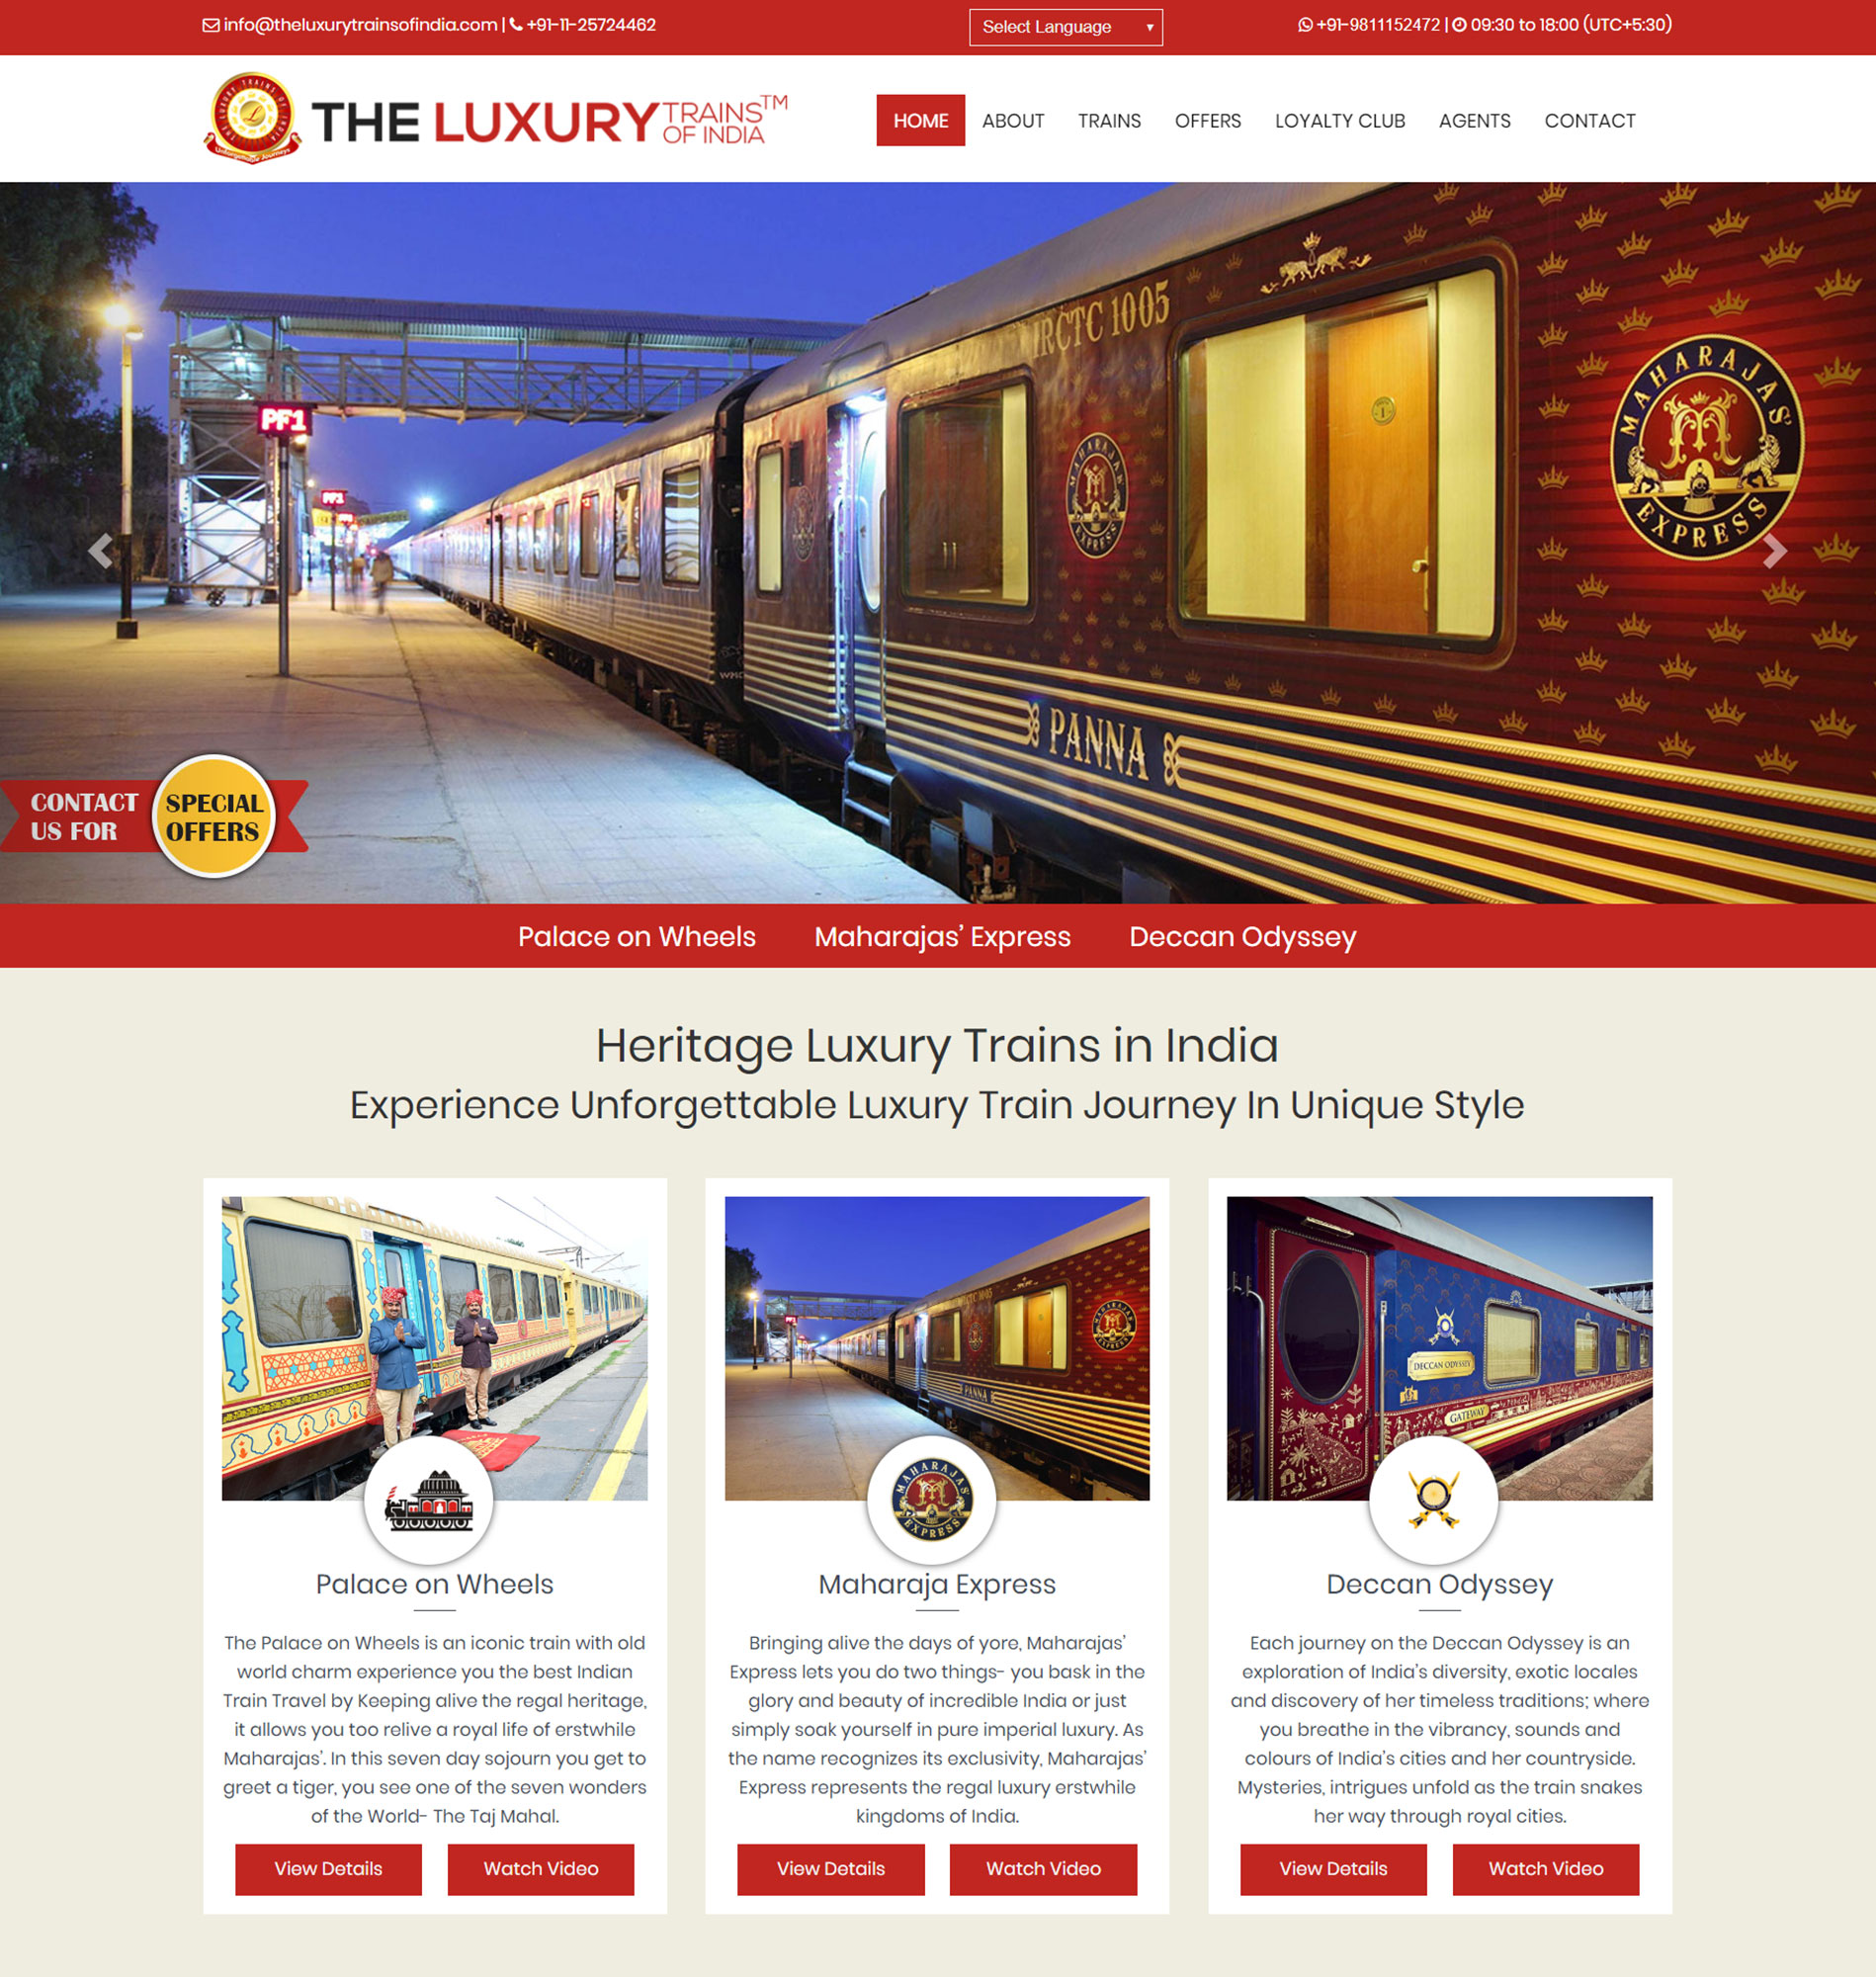 The Luxury Trains of India